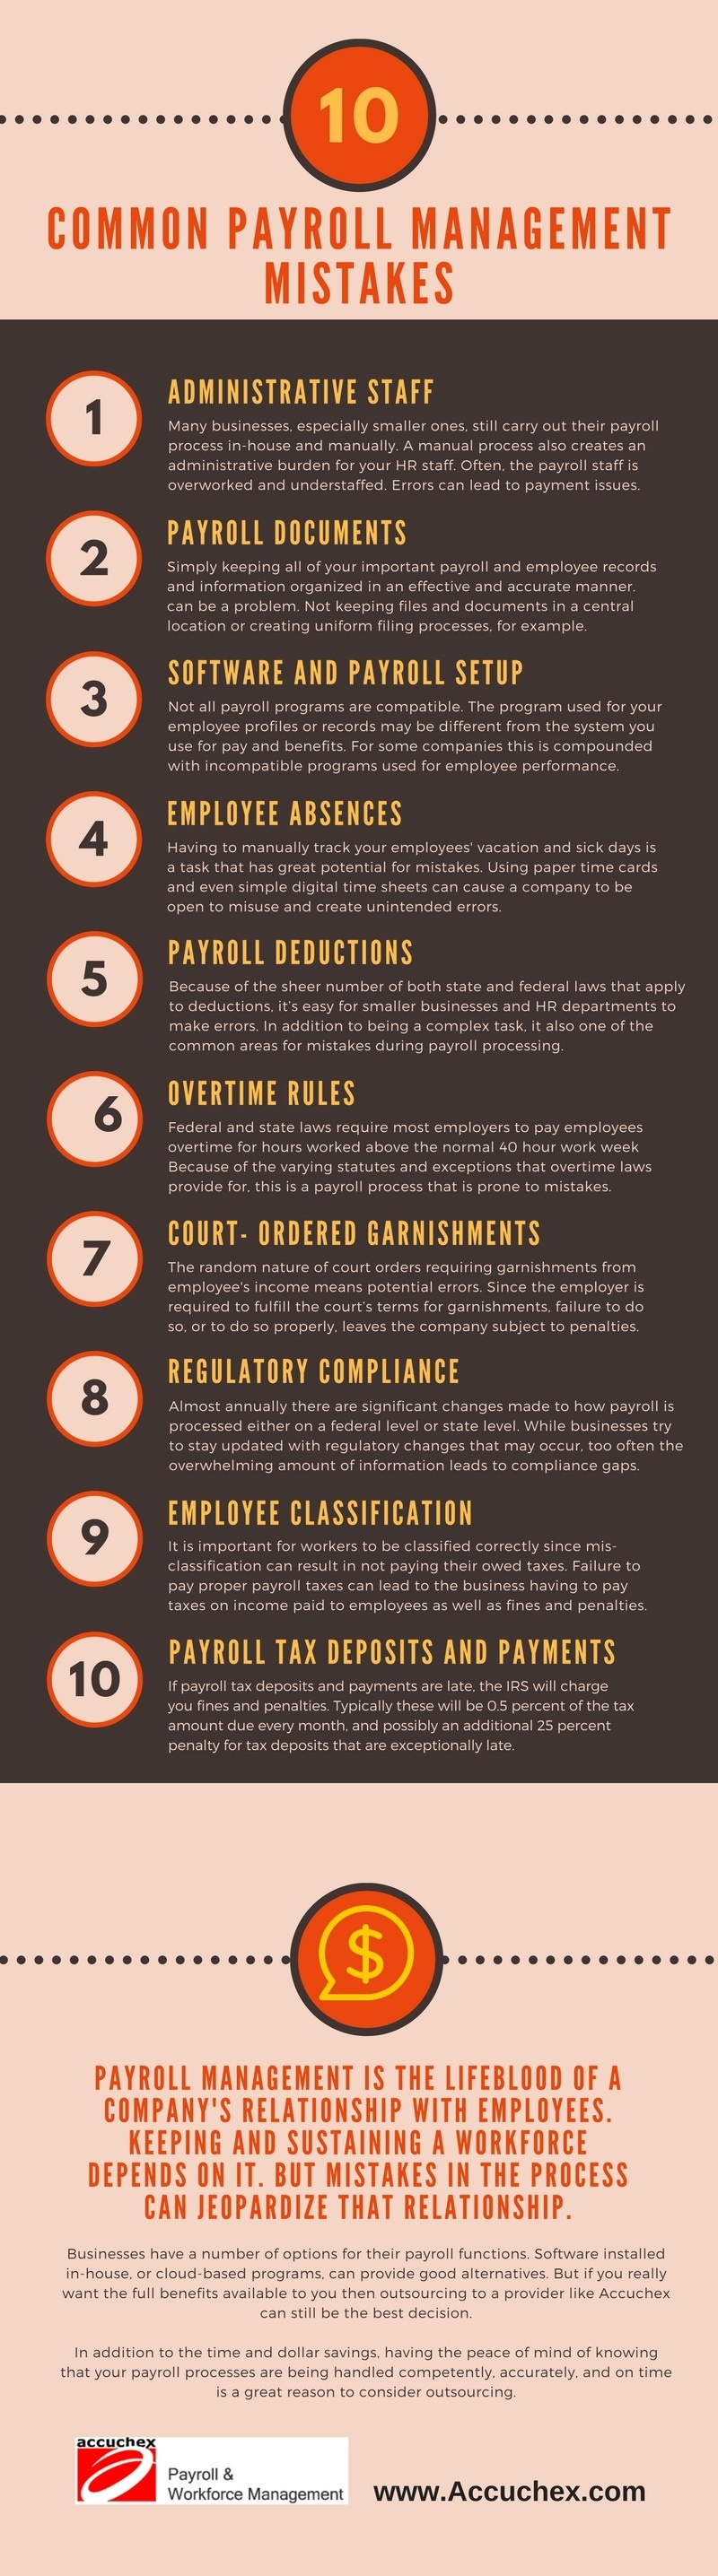 payroll_mistakes-1